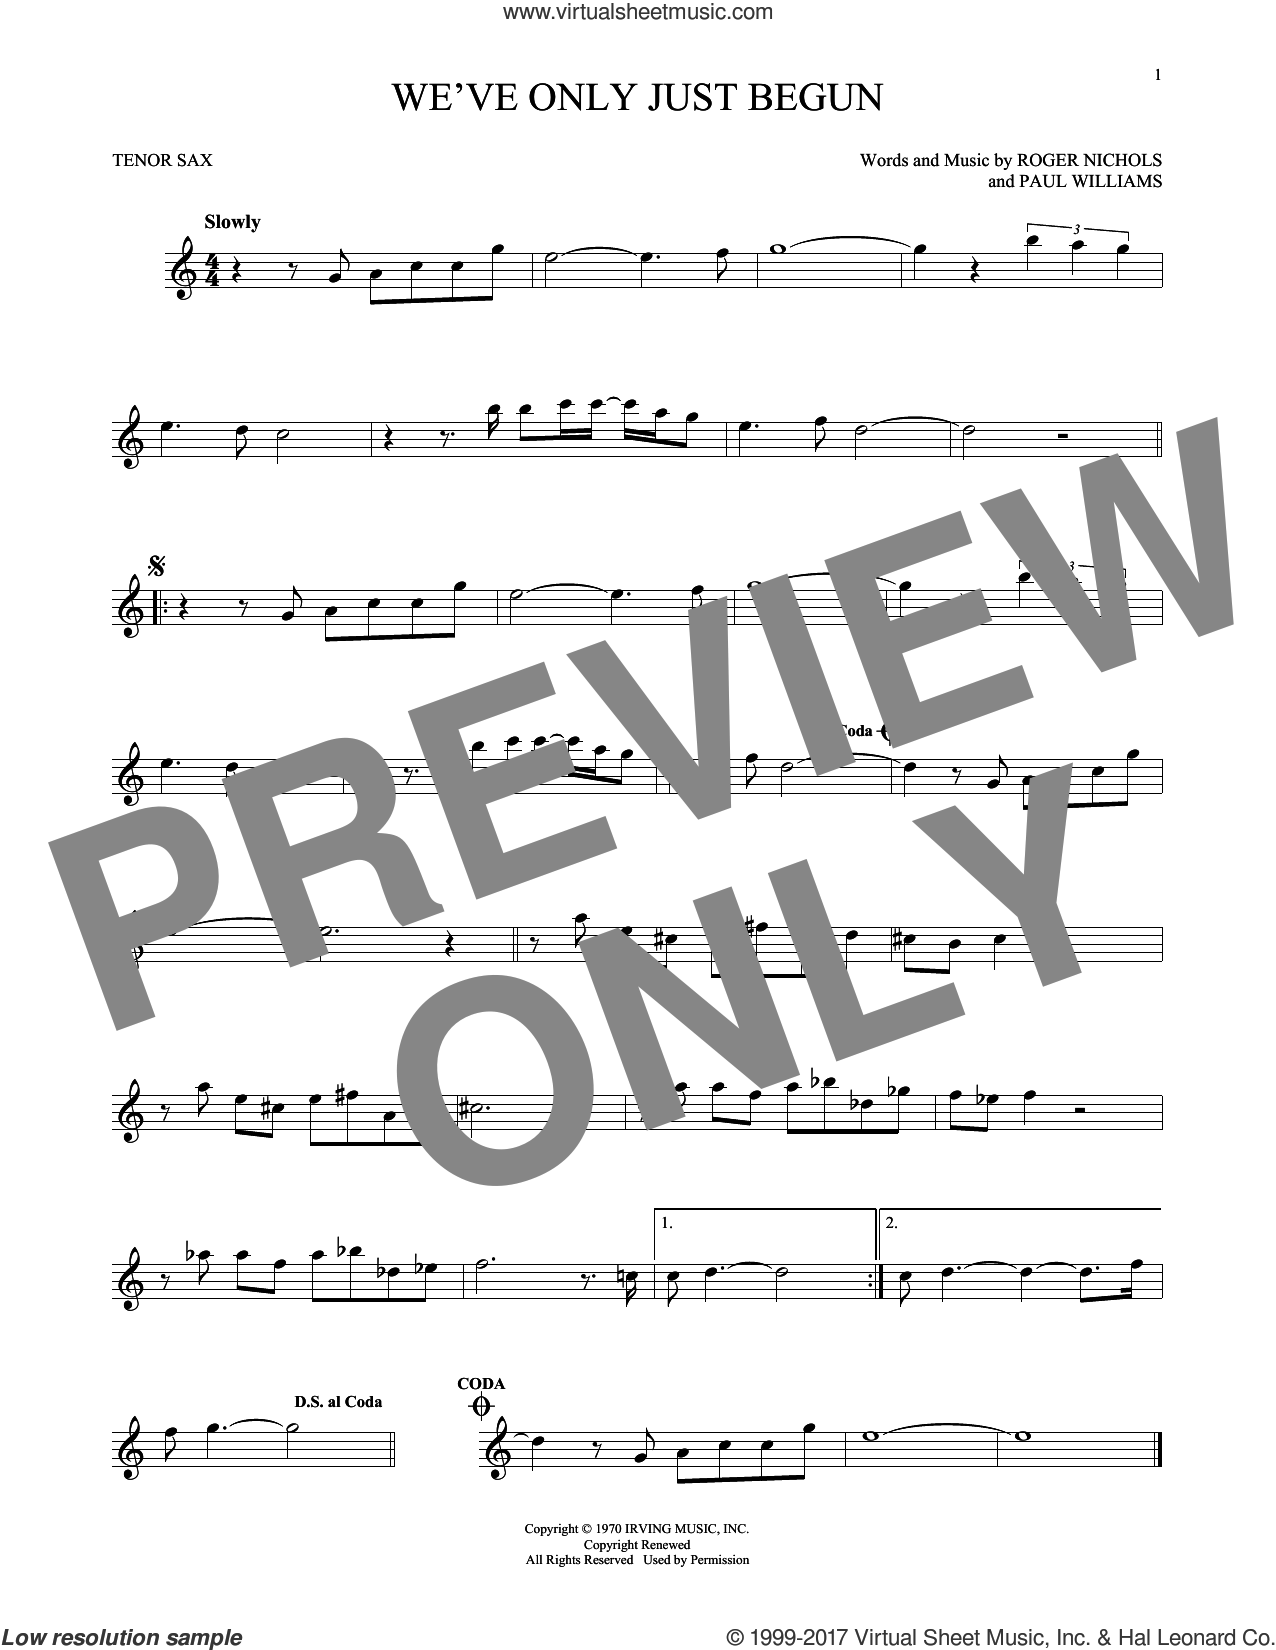 We've Only Just Begun sheet music for tenor saxophone solo by Paul Williams, Carpenters and Roger Nichols, intermediate skill level